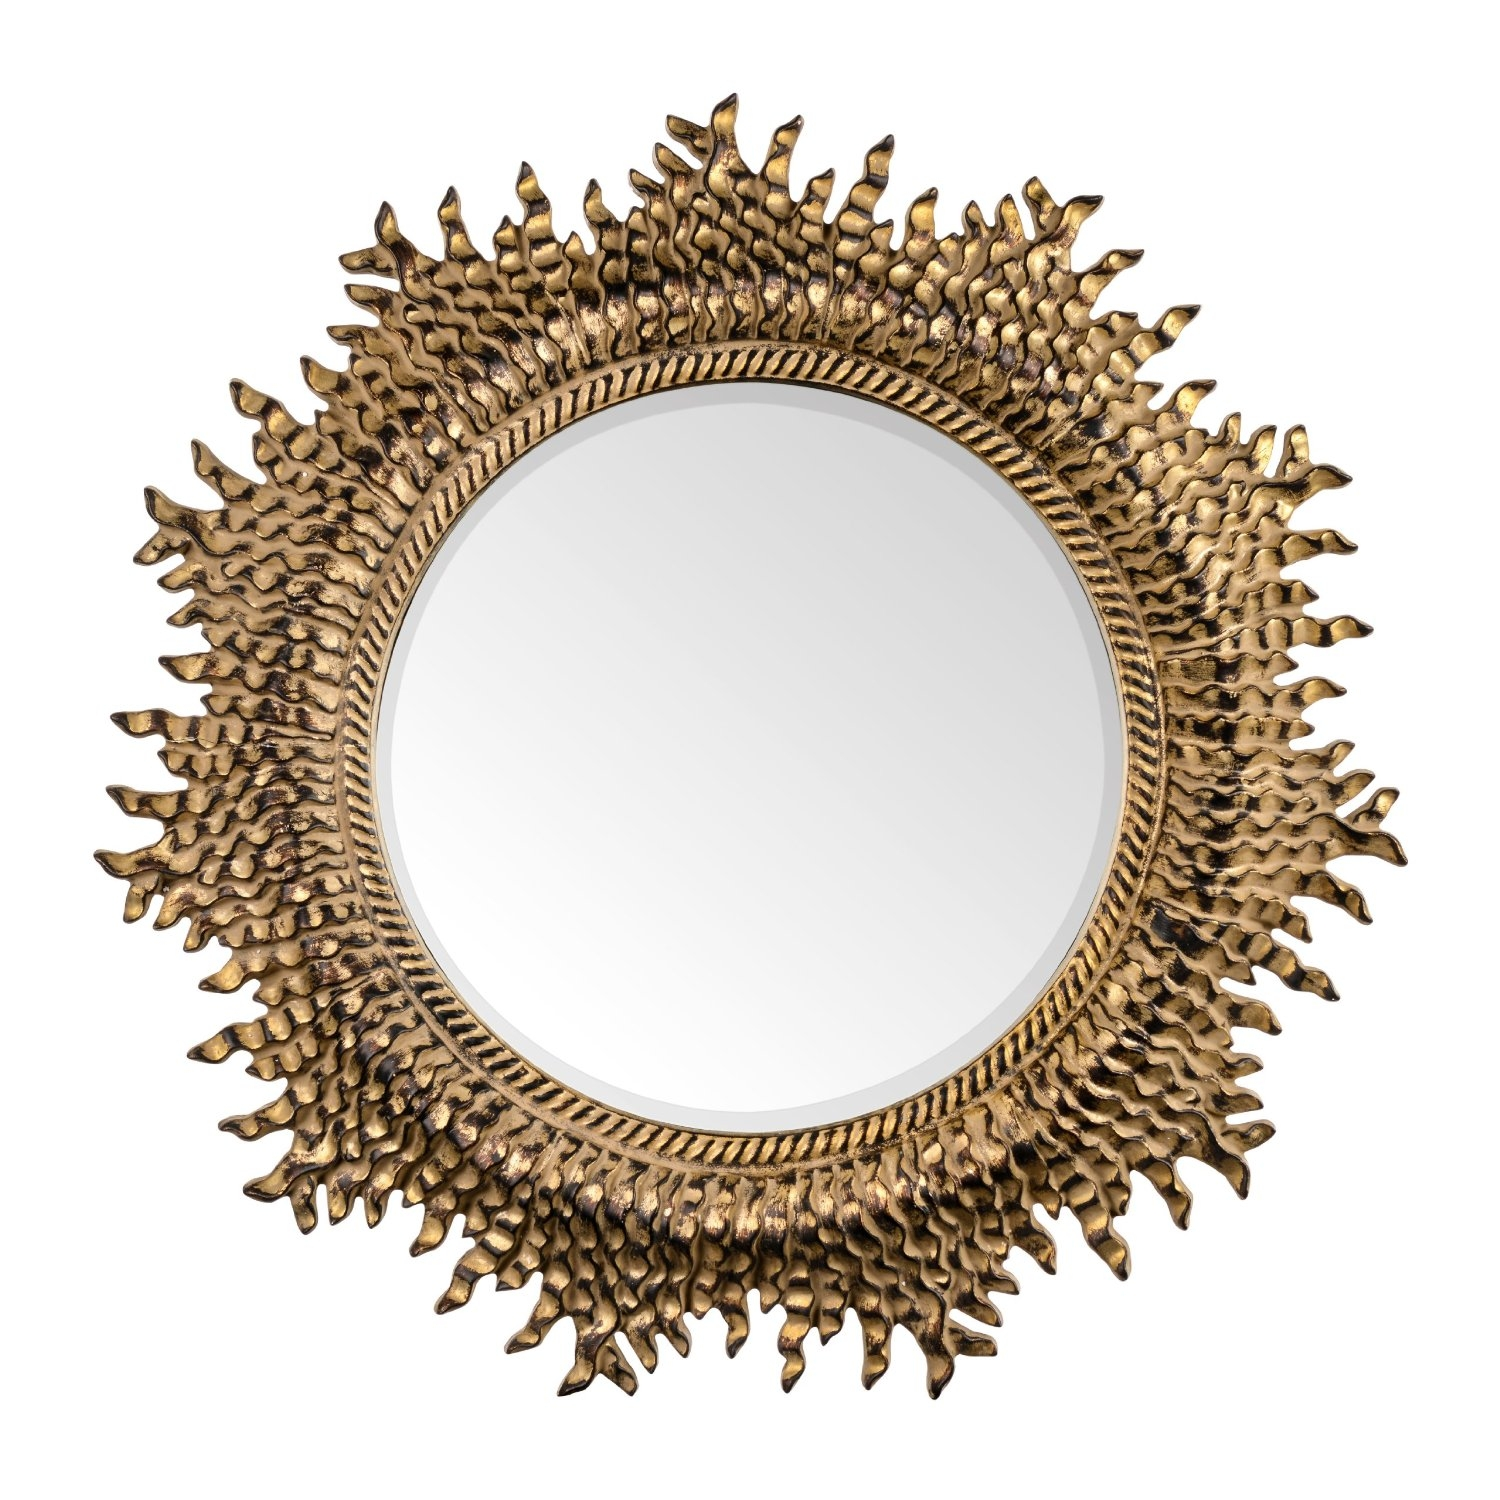 16 Ornate Mirrors For Your Home Qosy With Regard To Ornate Round Mirror (View 6 of 15)